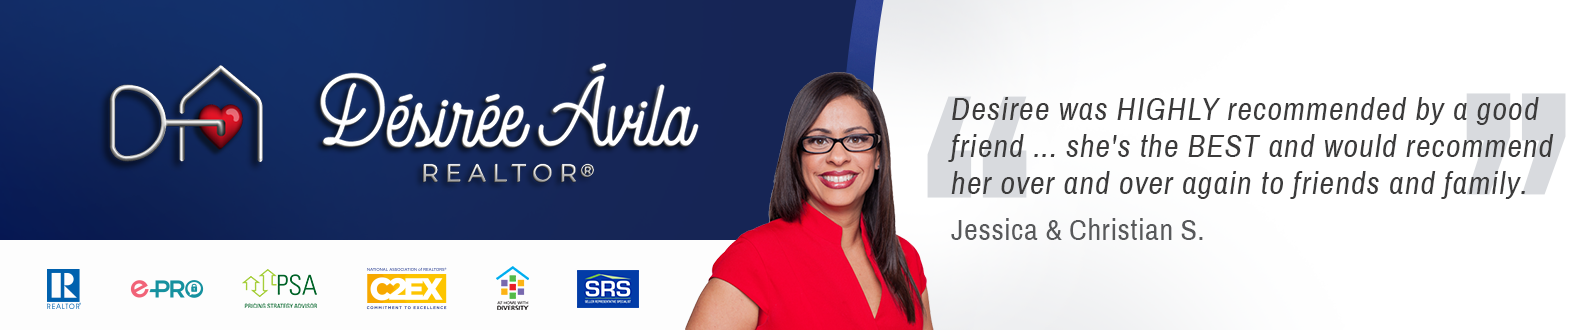 Desiree-Avila-Realtor_02-02-header-testimonial_JESSICA